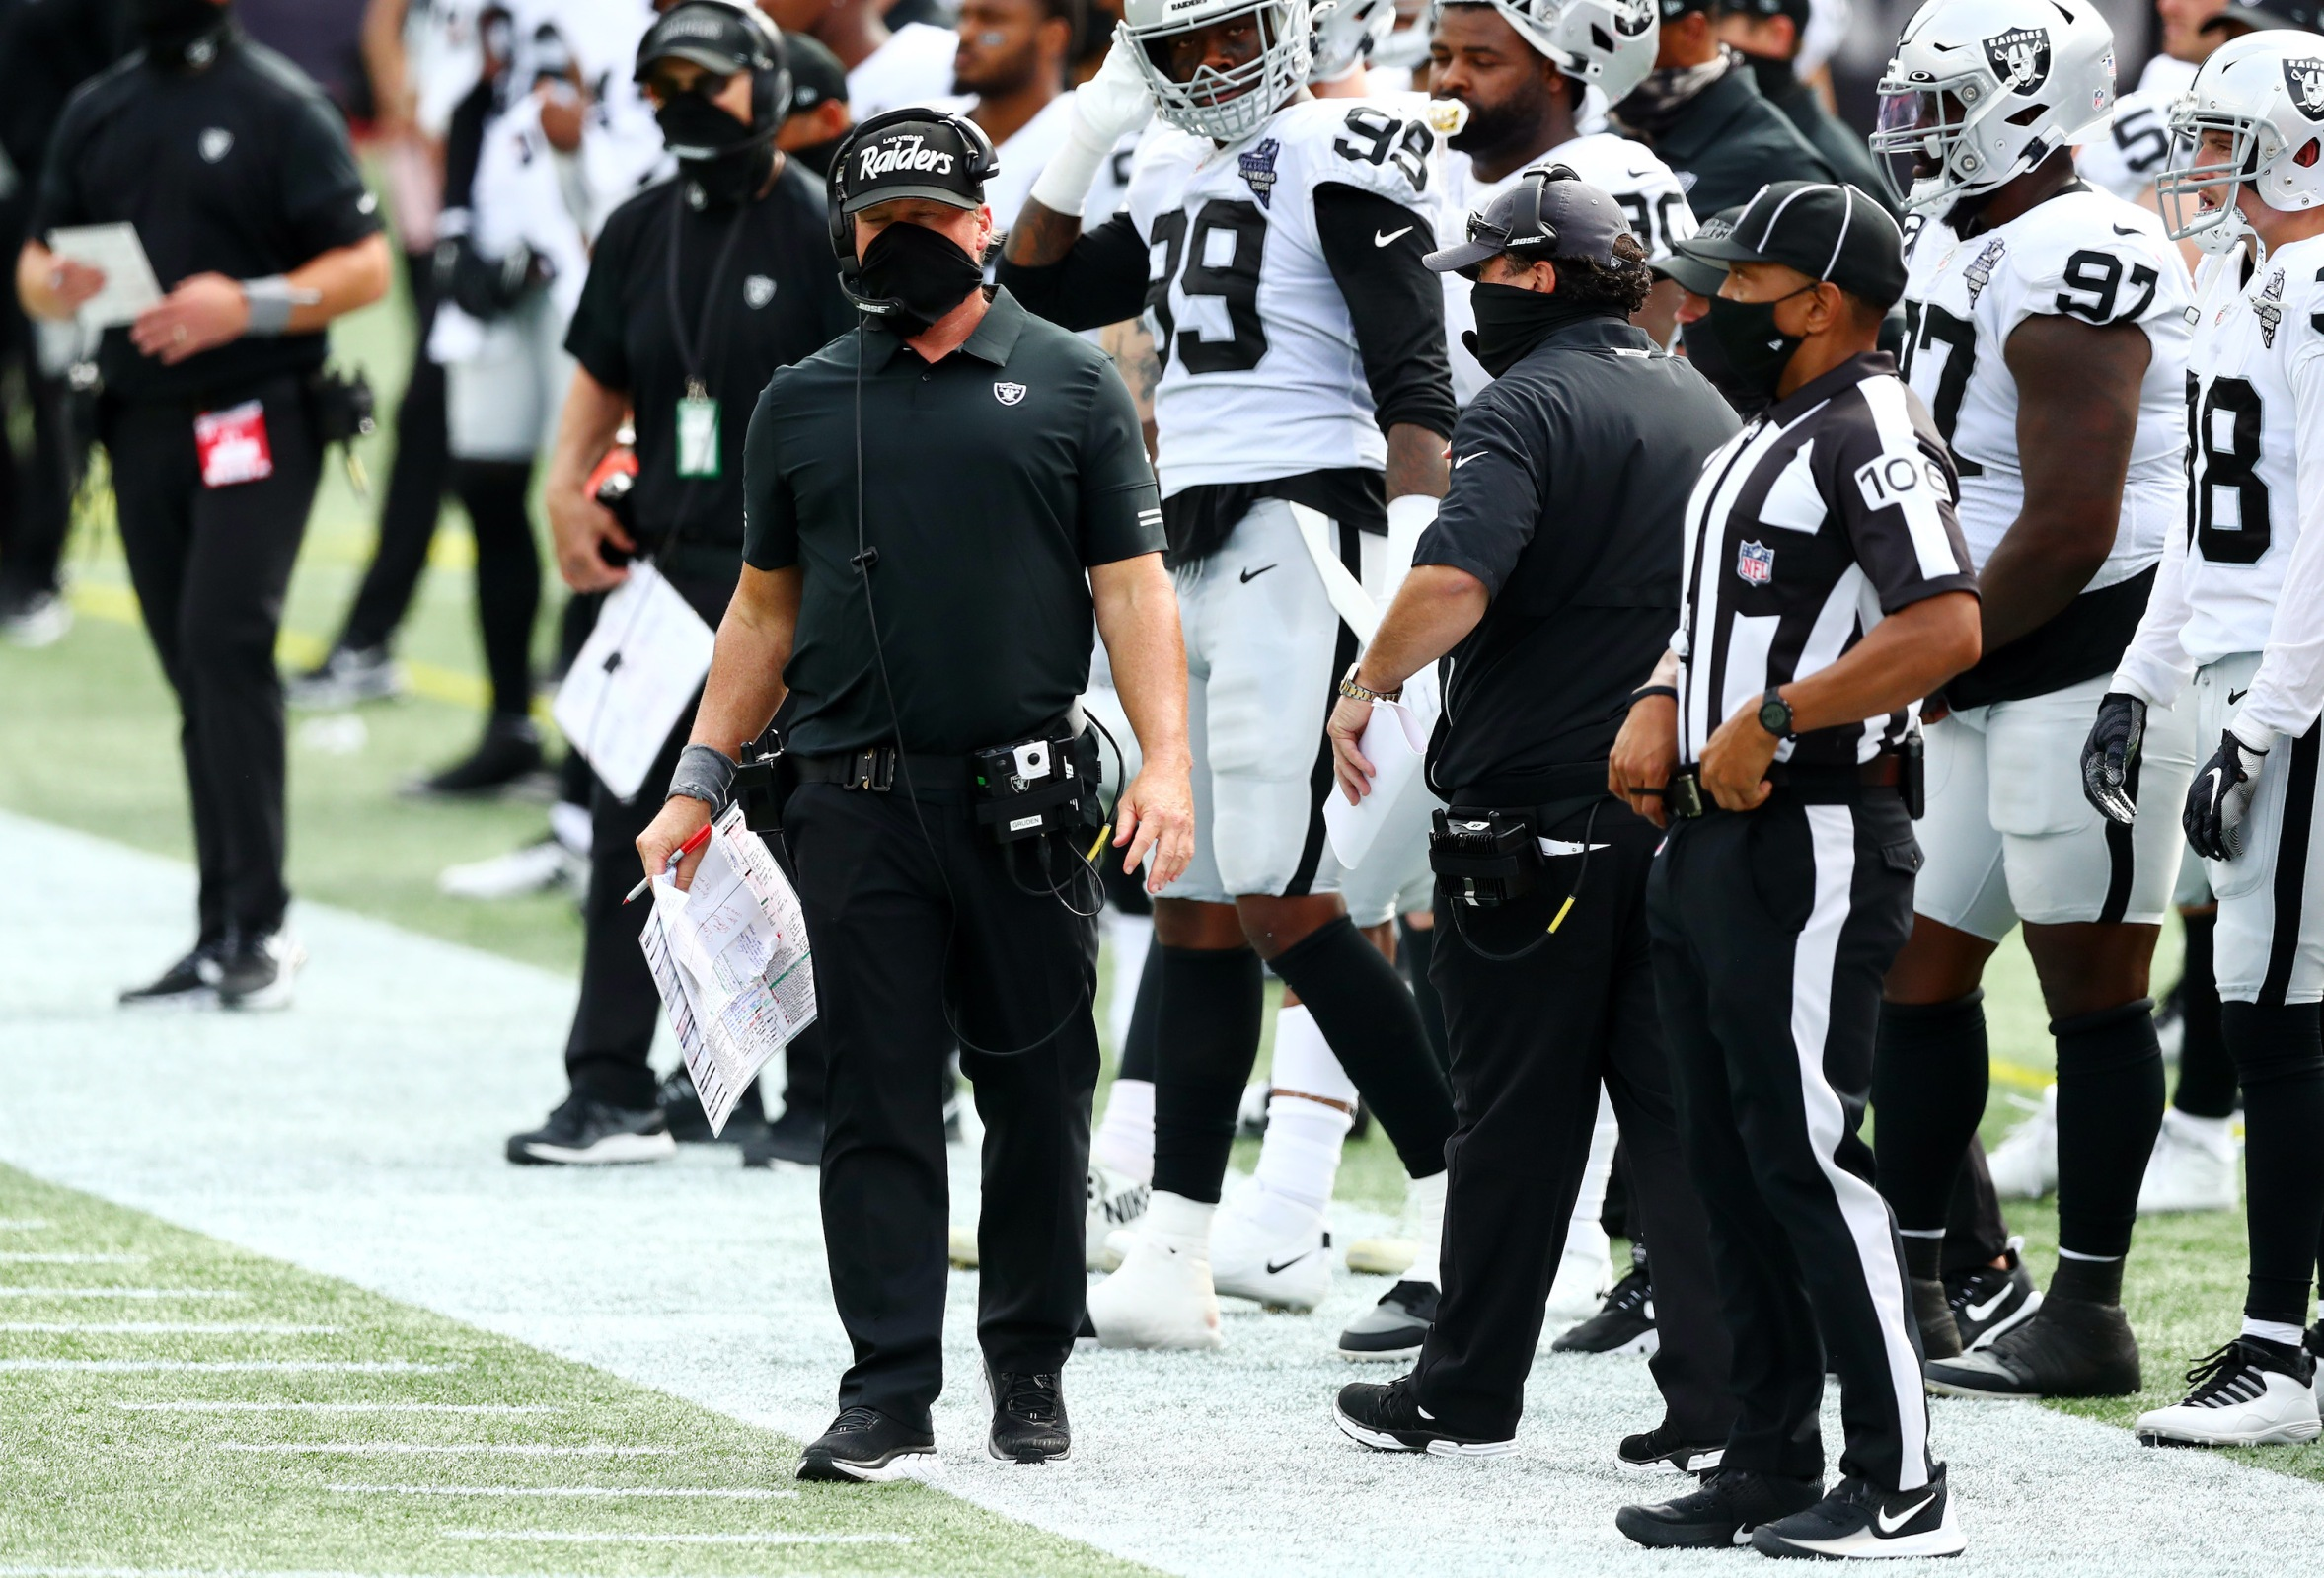 Las Vegas Raiders head coach Jon Gruden stands on the sideline during the game against the New England Patriots at Gillette Stadium on September 27, 2020 in Foxborough, Massachusetts.